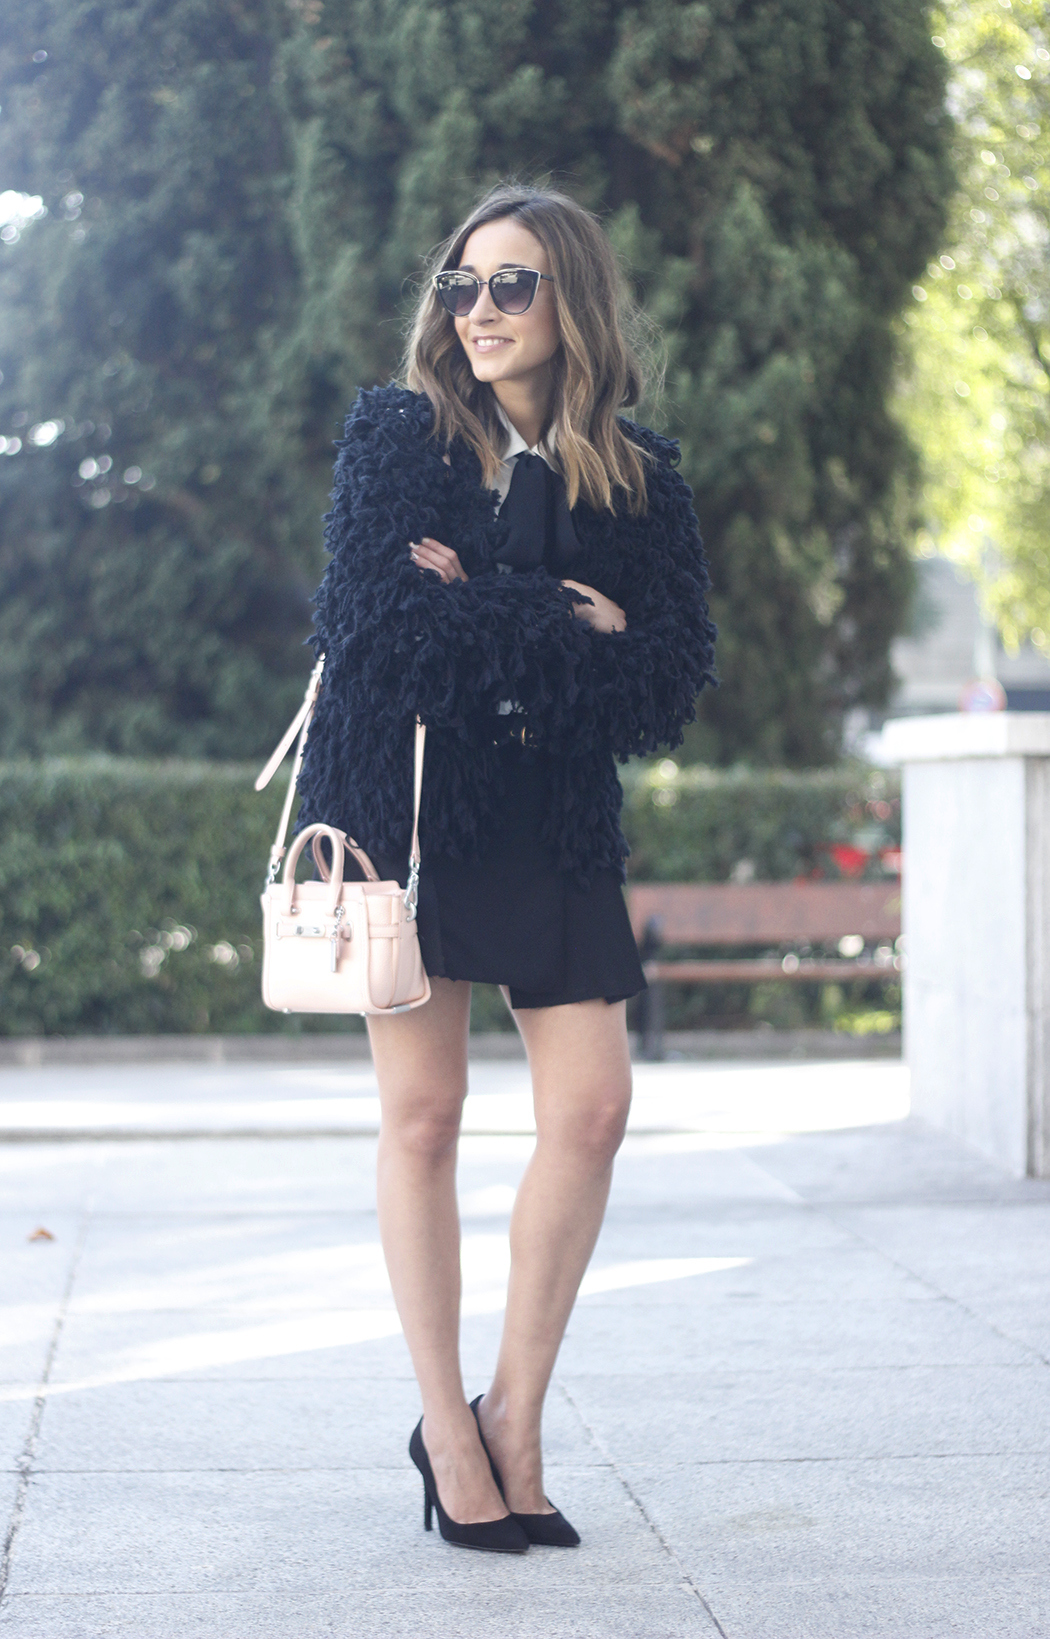 black jacket shirt with black bow coach pink bag heels outfit13